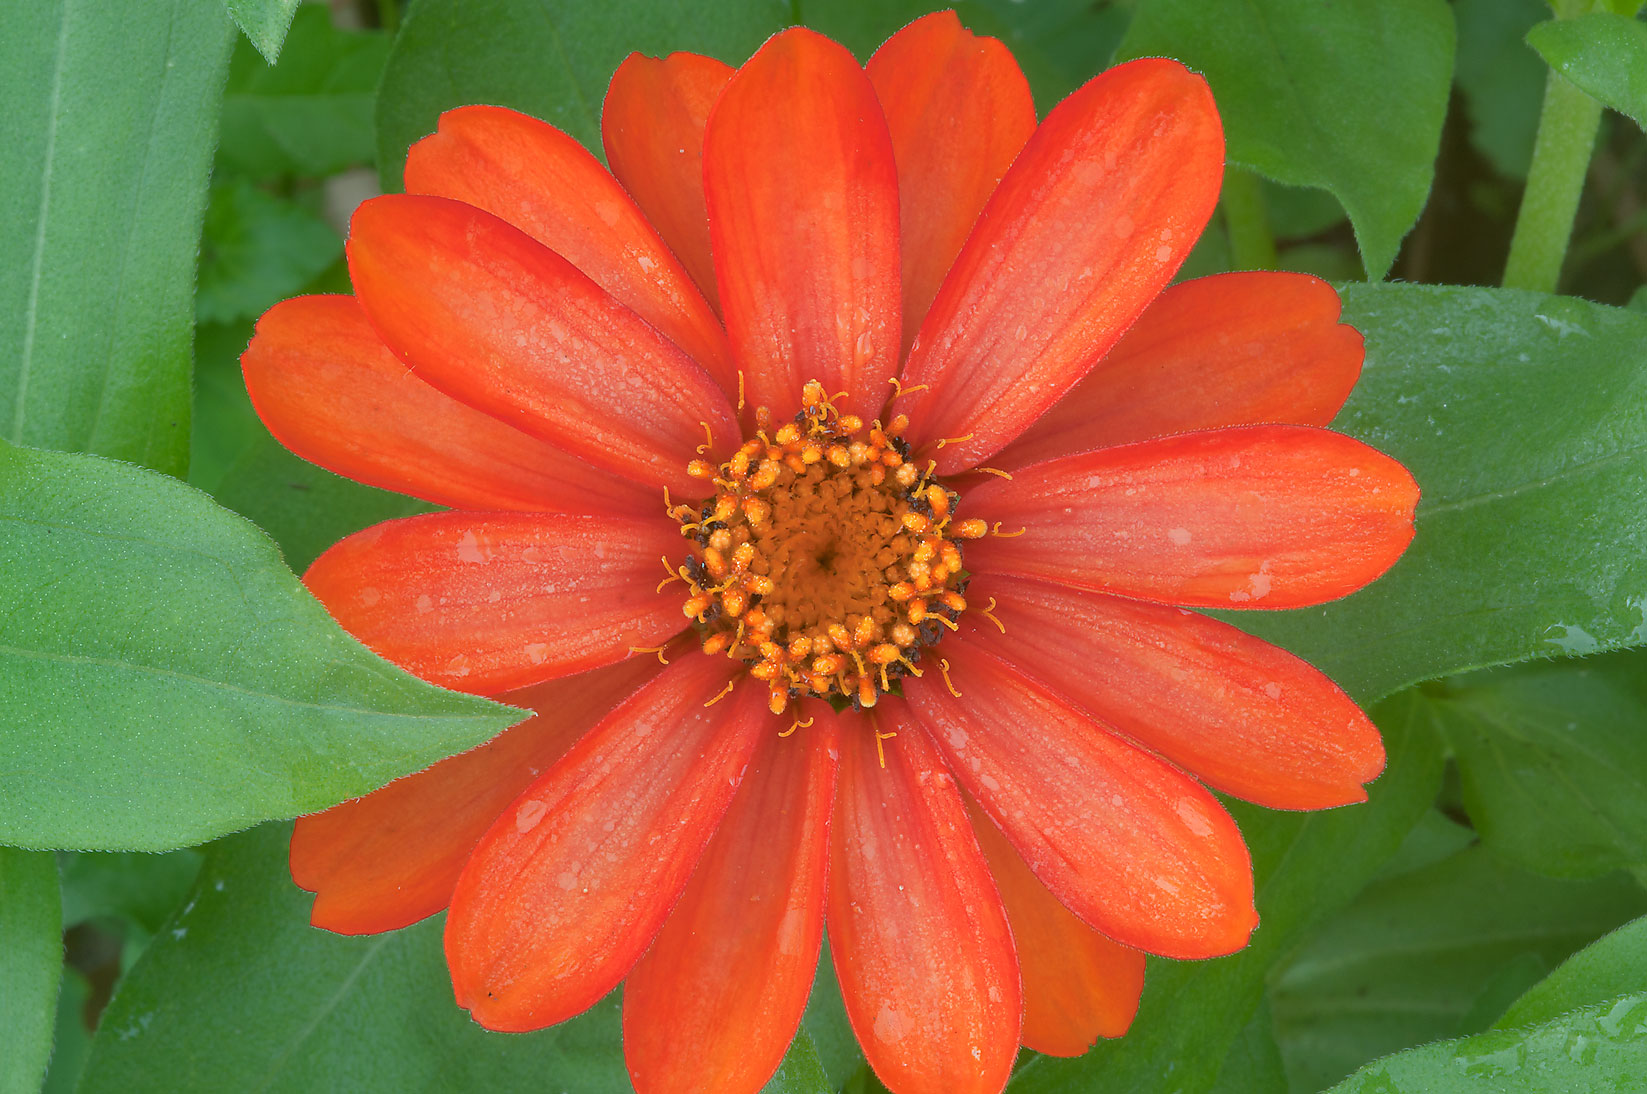 Orange flower of narrowleaf zinnia (Zinnia...Gardens. Humble (Houston area), Texas